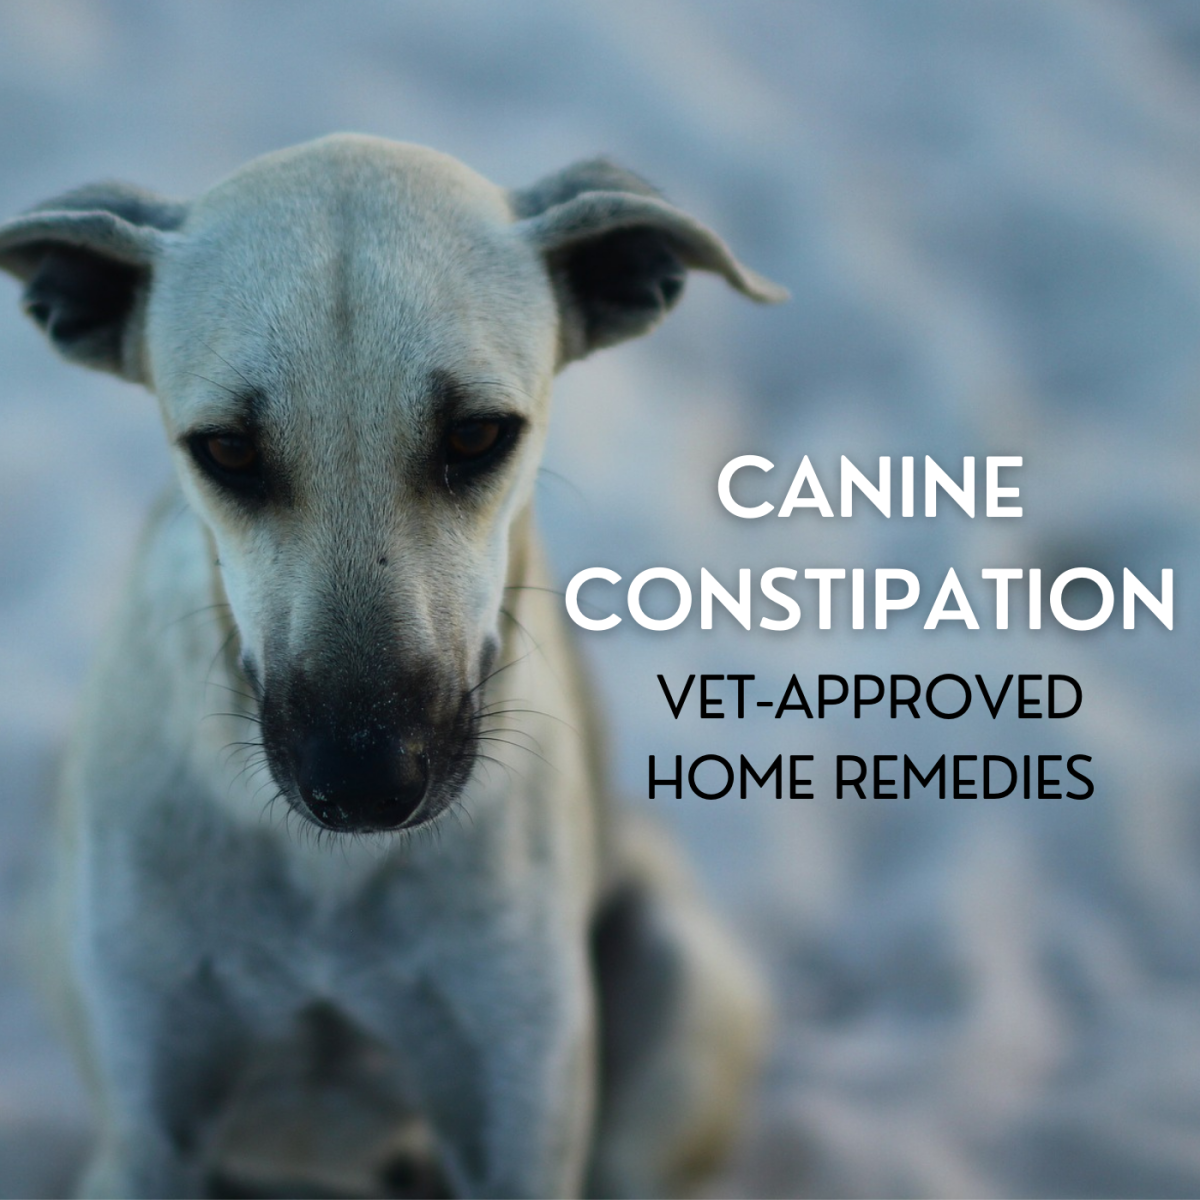 Learn about the potential causes of constipation in dogs, and review some home remedies you can discuss with your veterinarian.